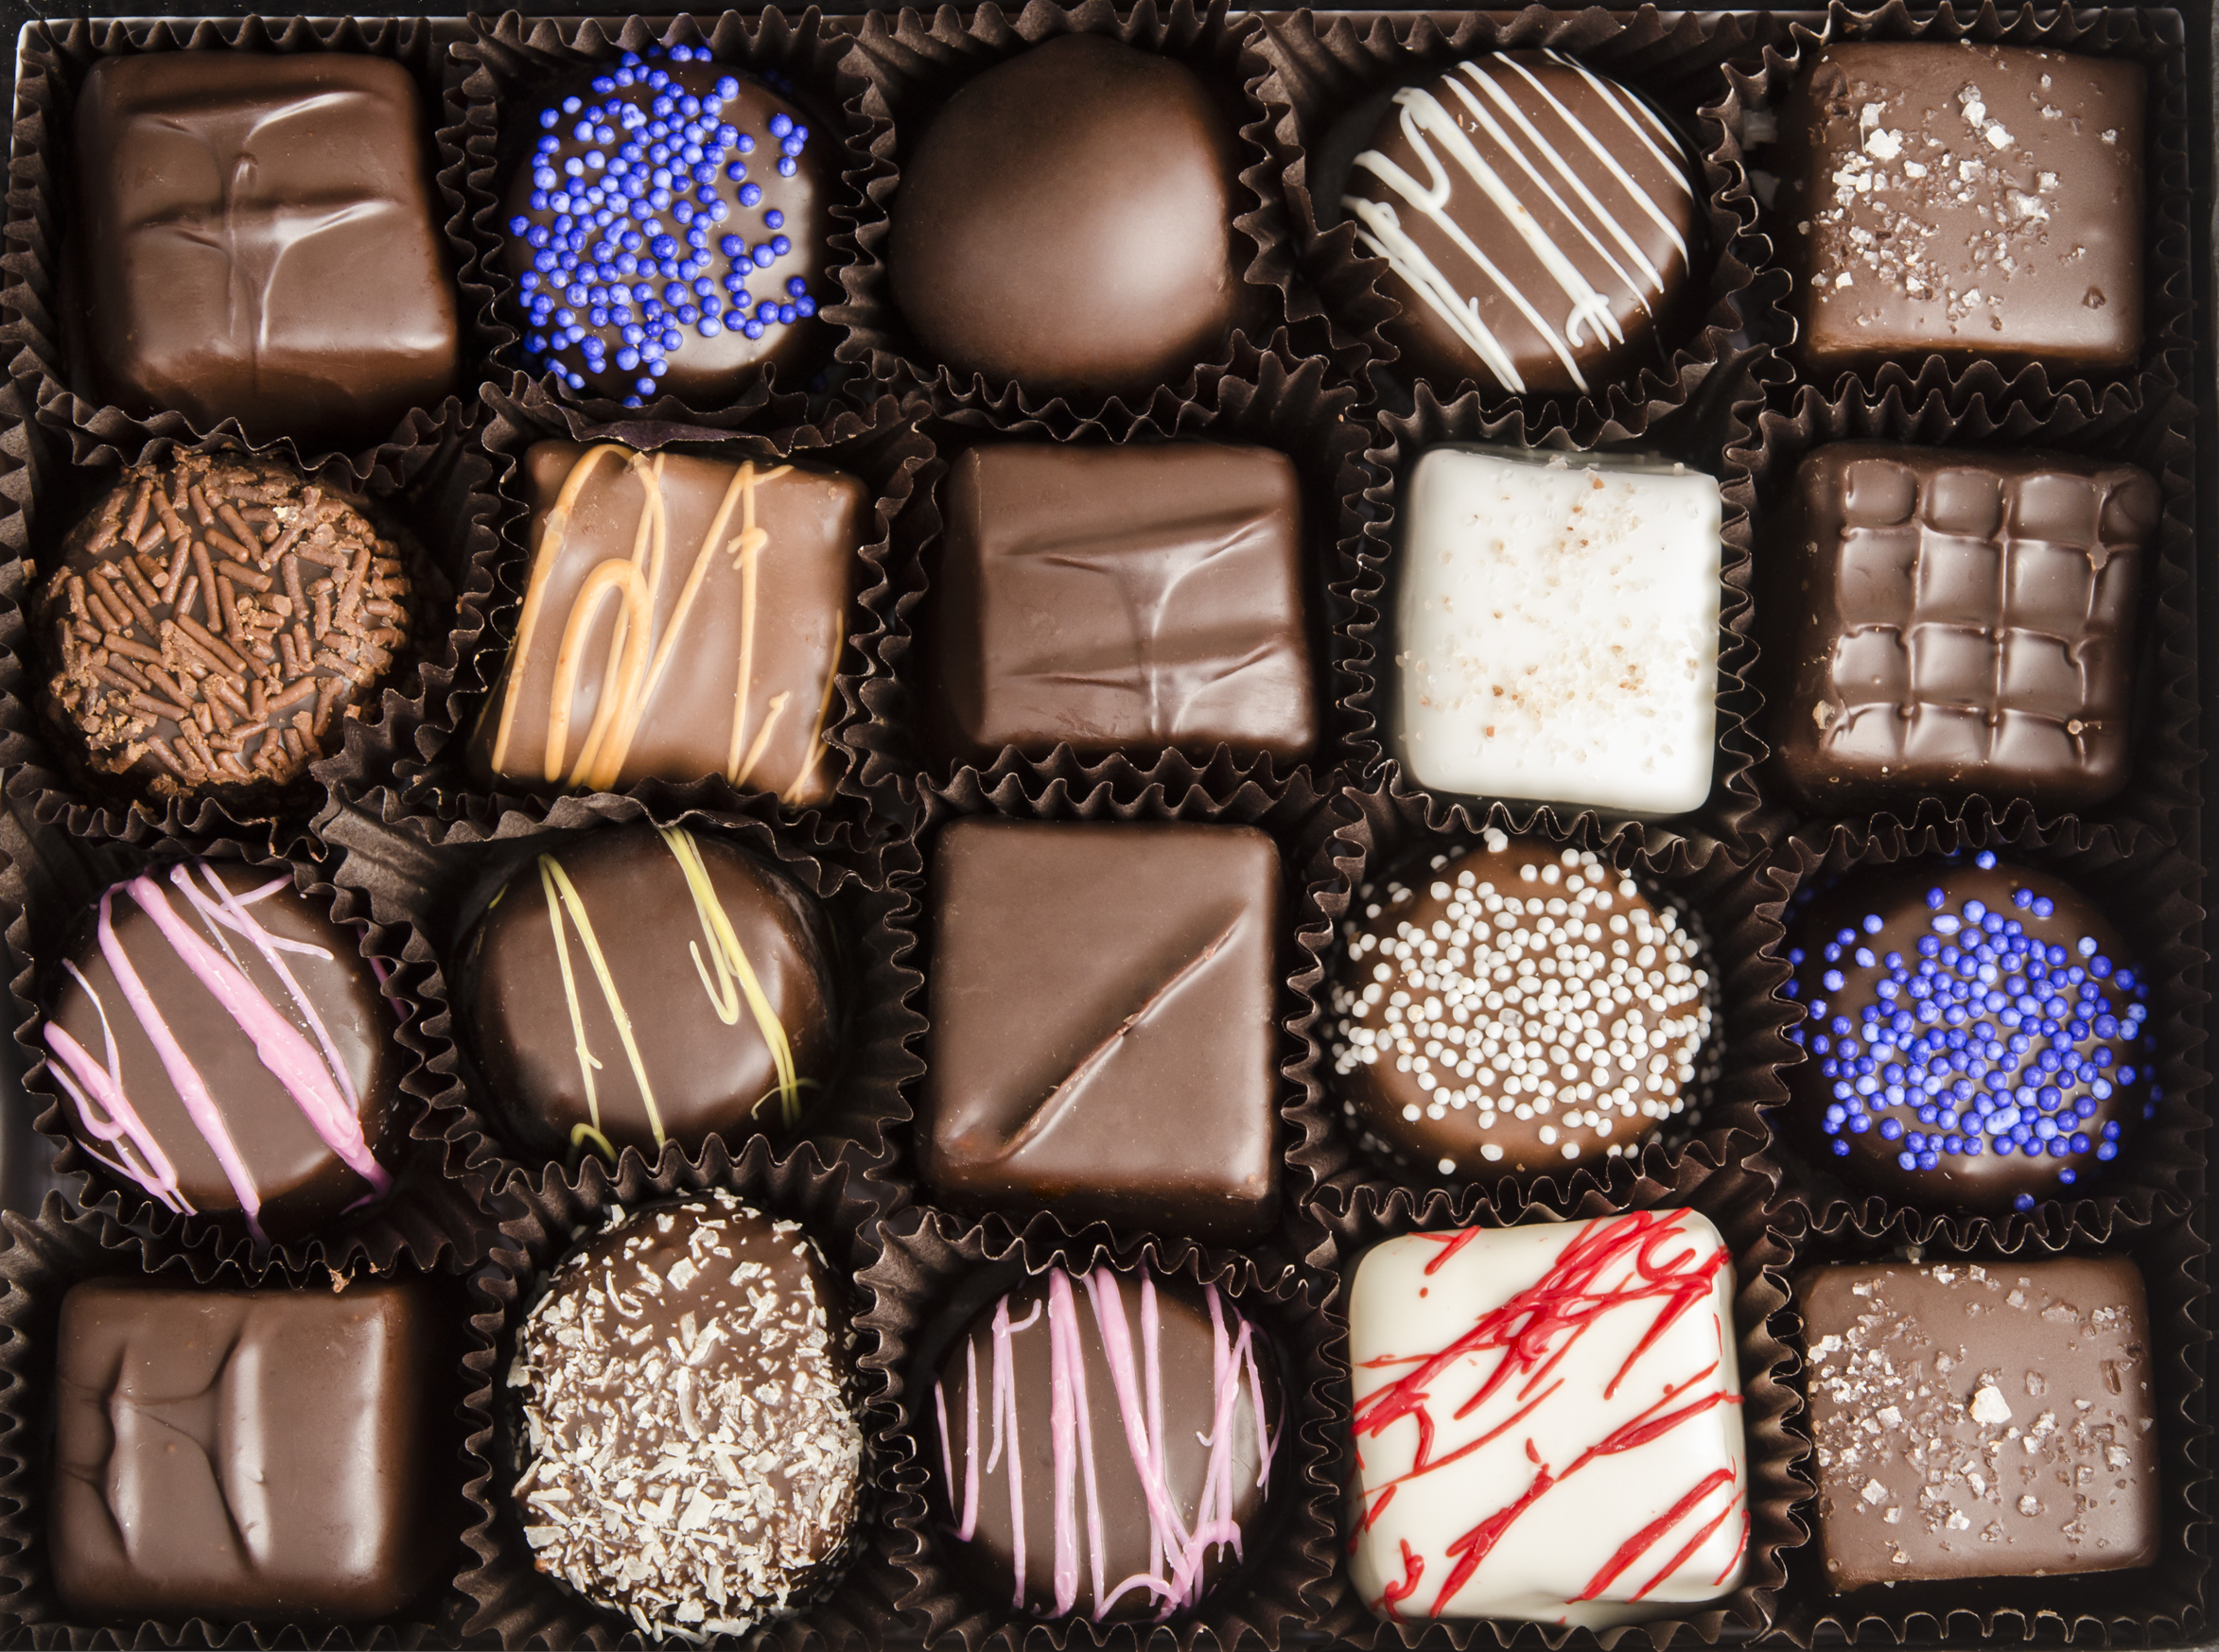 Photo of a decadent box of assorted chocolates.